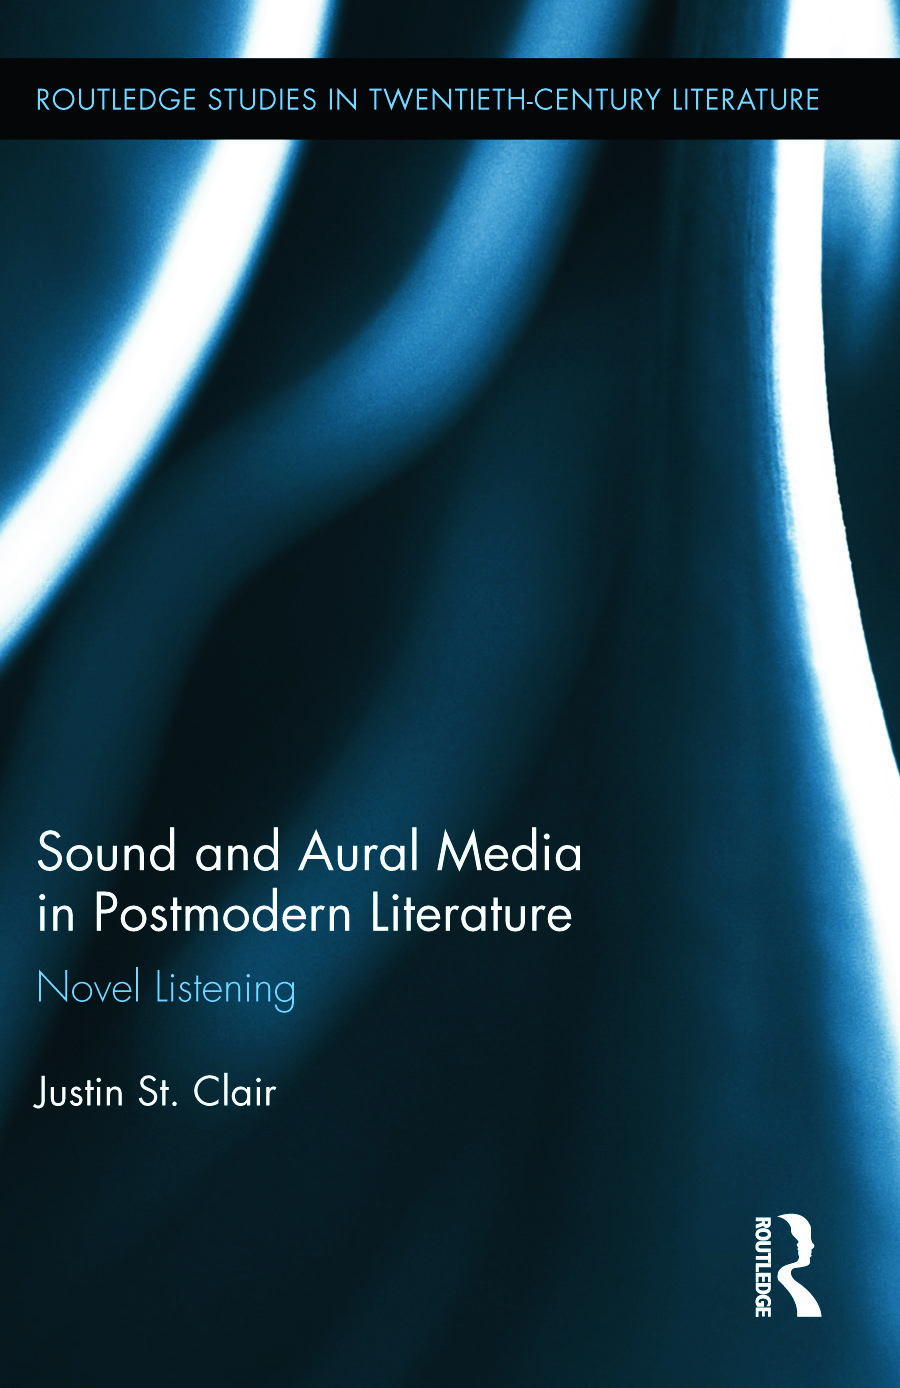 Sound and Aural Media in Postmodern Literature: Novel Listening